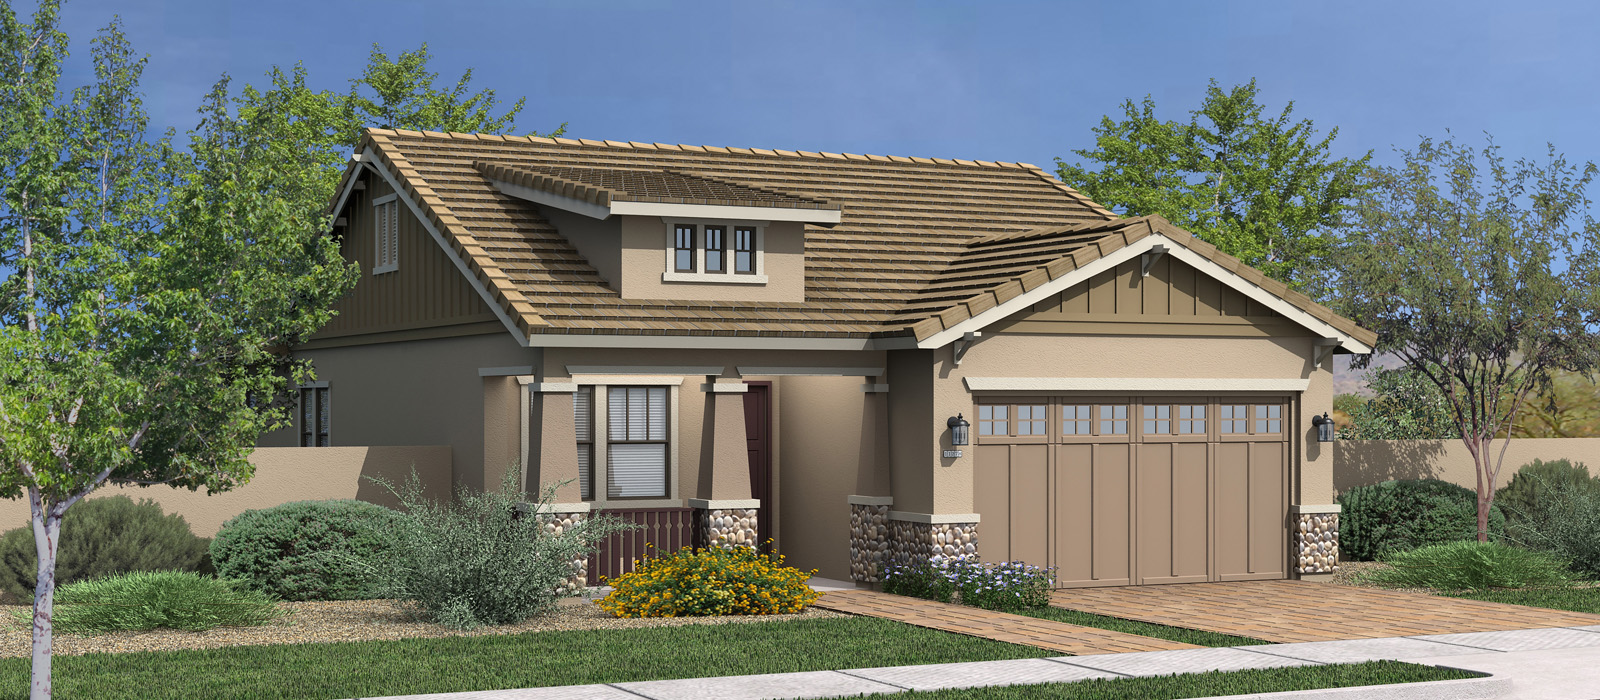 Cottonwood lakeview trails at morrison ranch by fulton homes for Cottonwood house